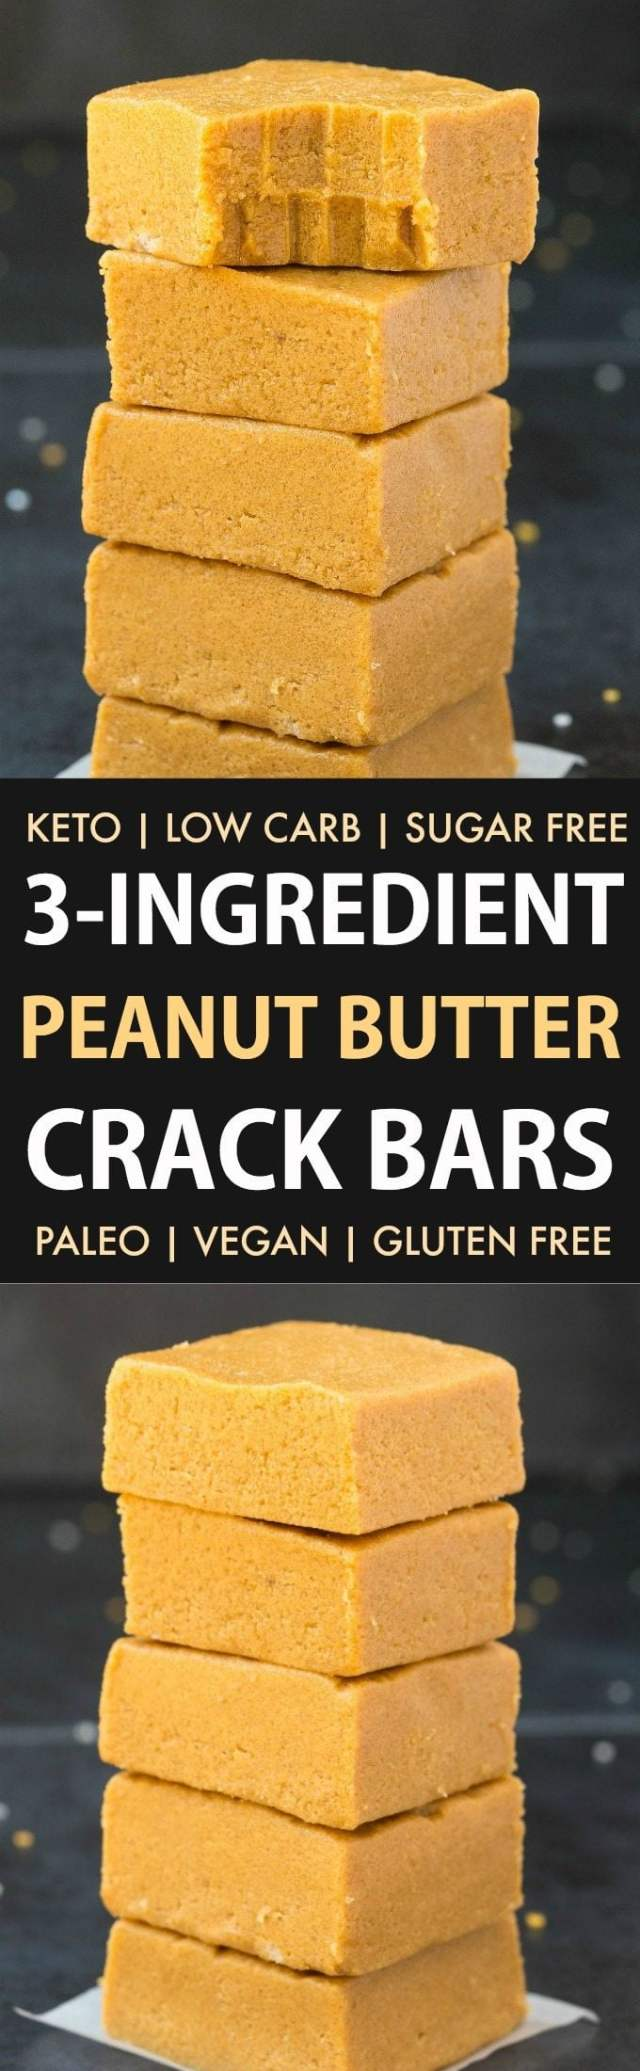 3-Ingredient No Bake Peanut Butter Crack Bars (Keto, Paleo, Vegan, Sugar Free)- Make this easy no bake peanut butter crack bars recipe which tastes like fudge in under 5 minutes, to satisfy your sweet tooth the healthy way! Low carb, smooth, creamy and with just 3 ingredients! #lowcarbrecipe #healthyfudge #peanutbutter #ketodessert #lowcarb #sugarfree   Recipe on thebigmansworld.com